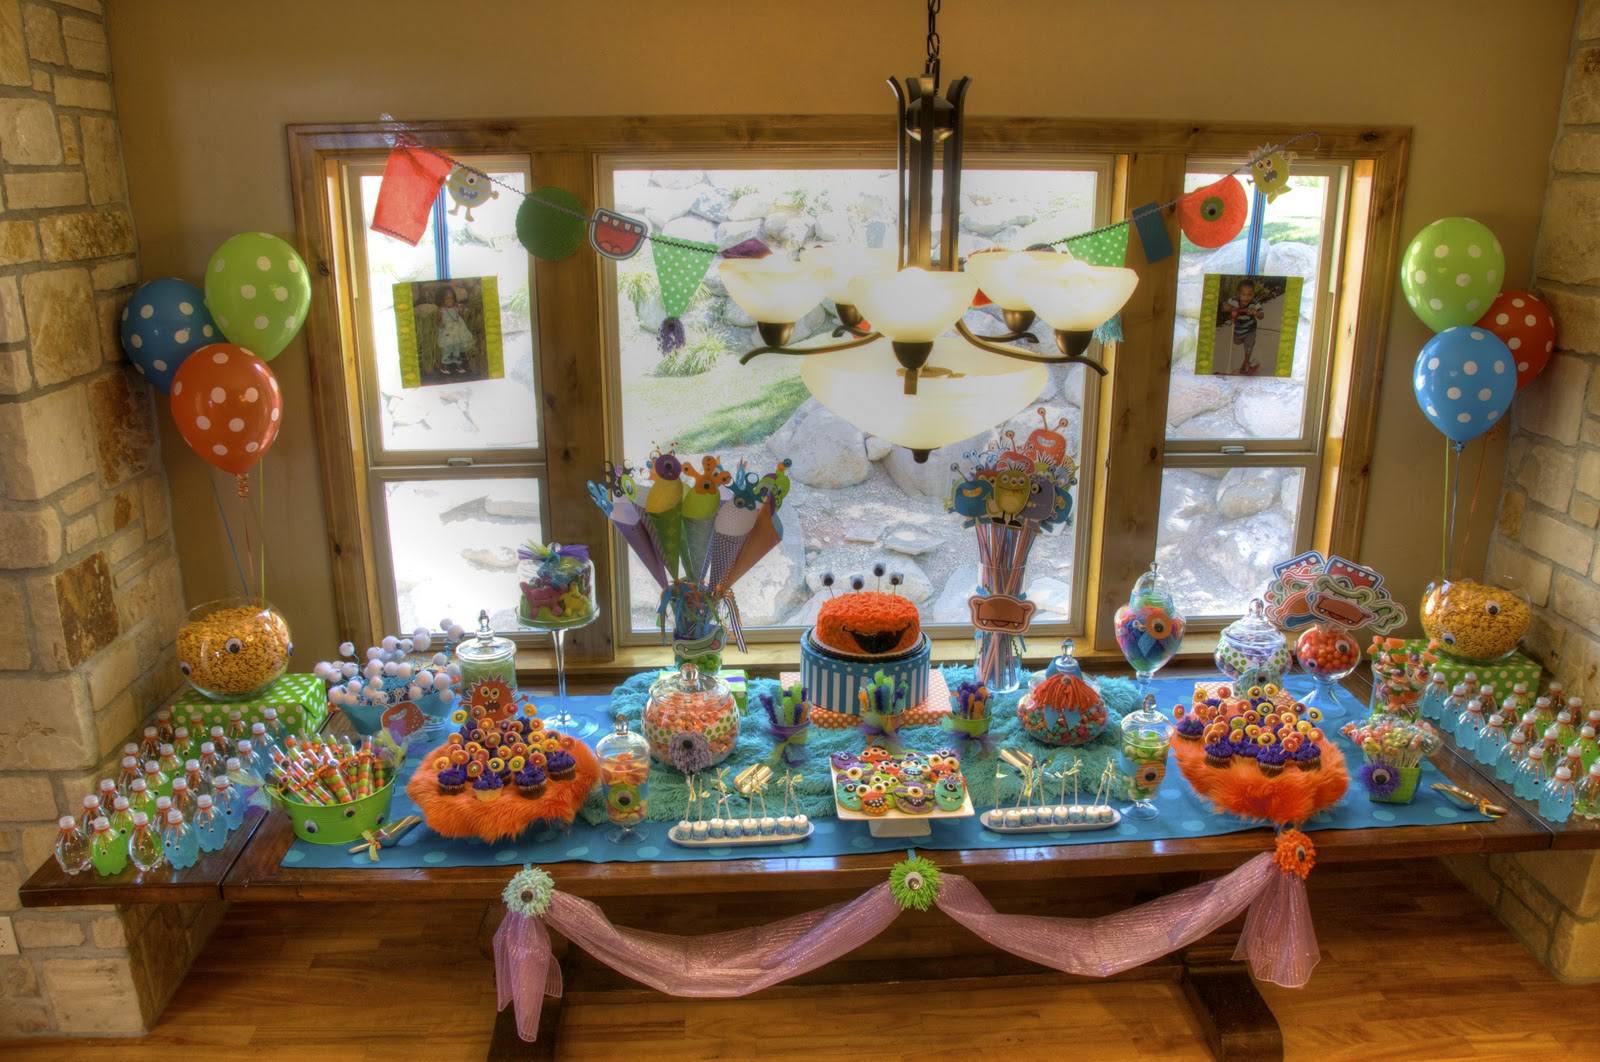 2 year old birthday party themes ; 110827+Ryder+%252526+Reagan+Monster+Party+6